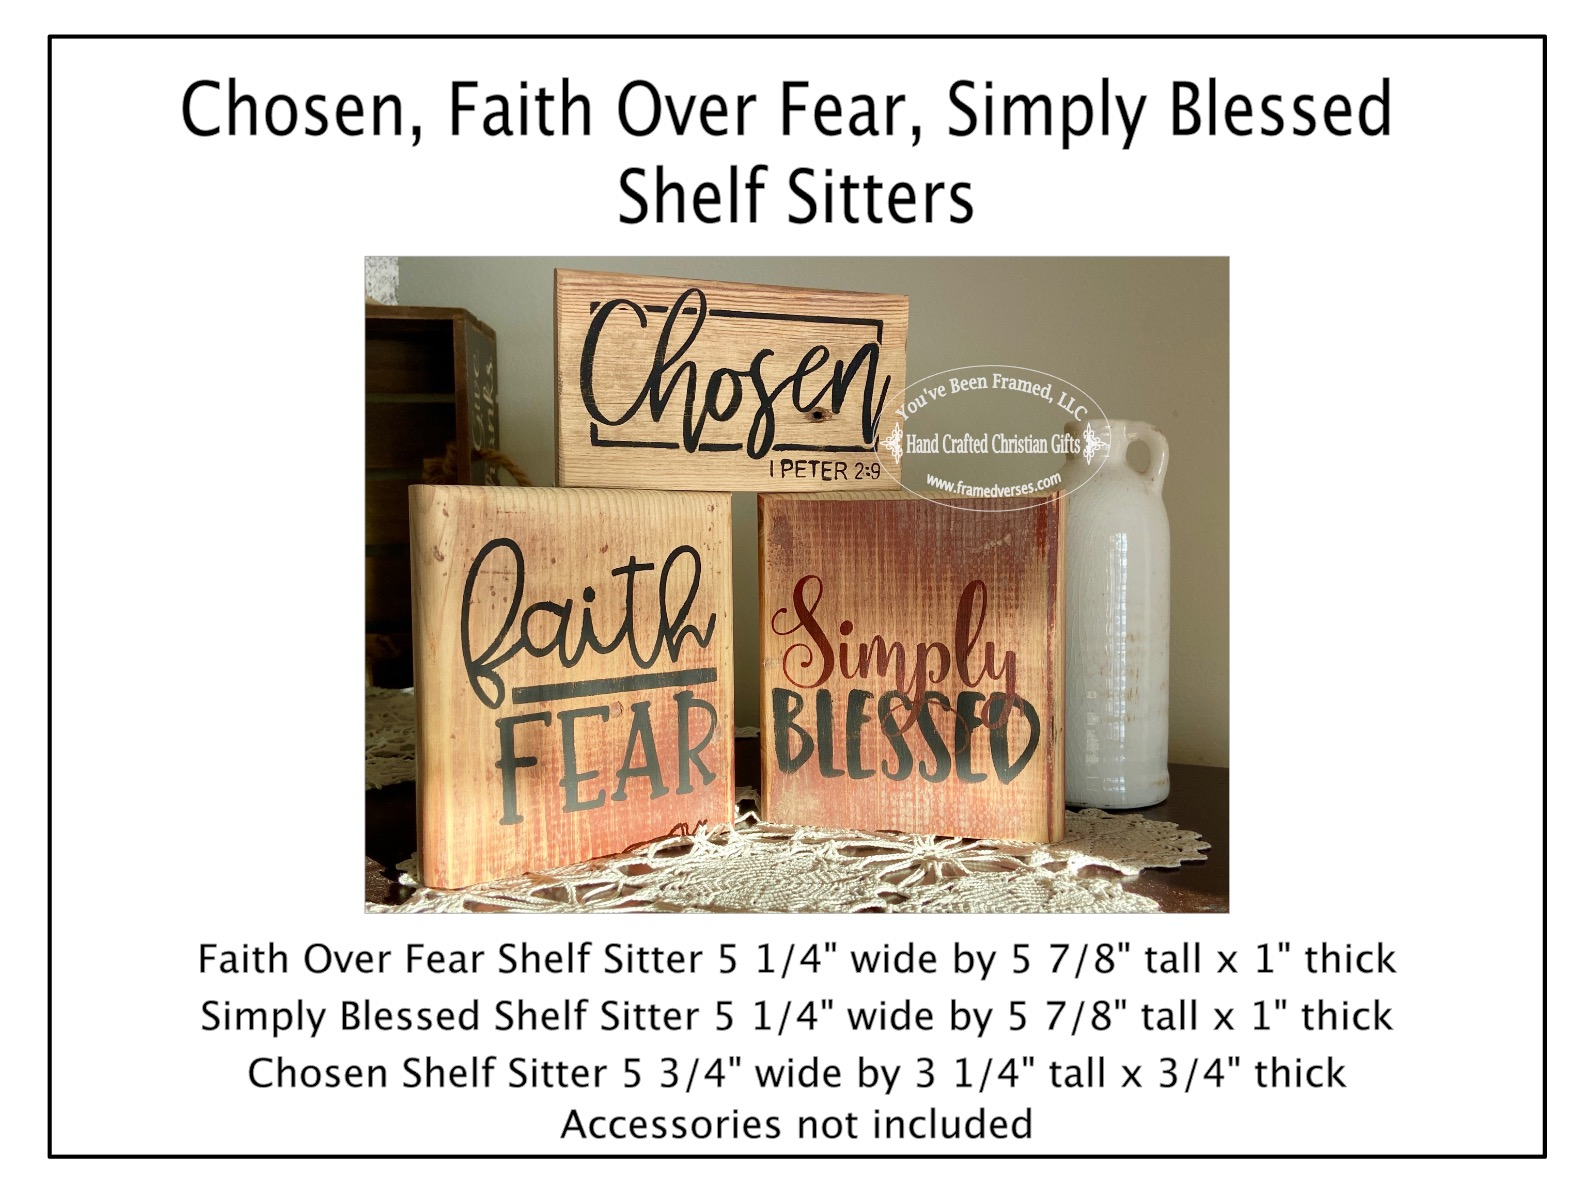 Chosen, Faith Over Fear, Simply Blessed Shelf Sitters Set of 3